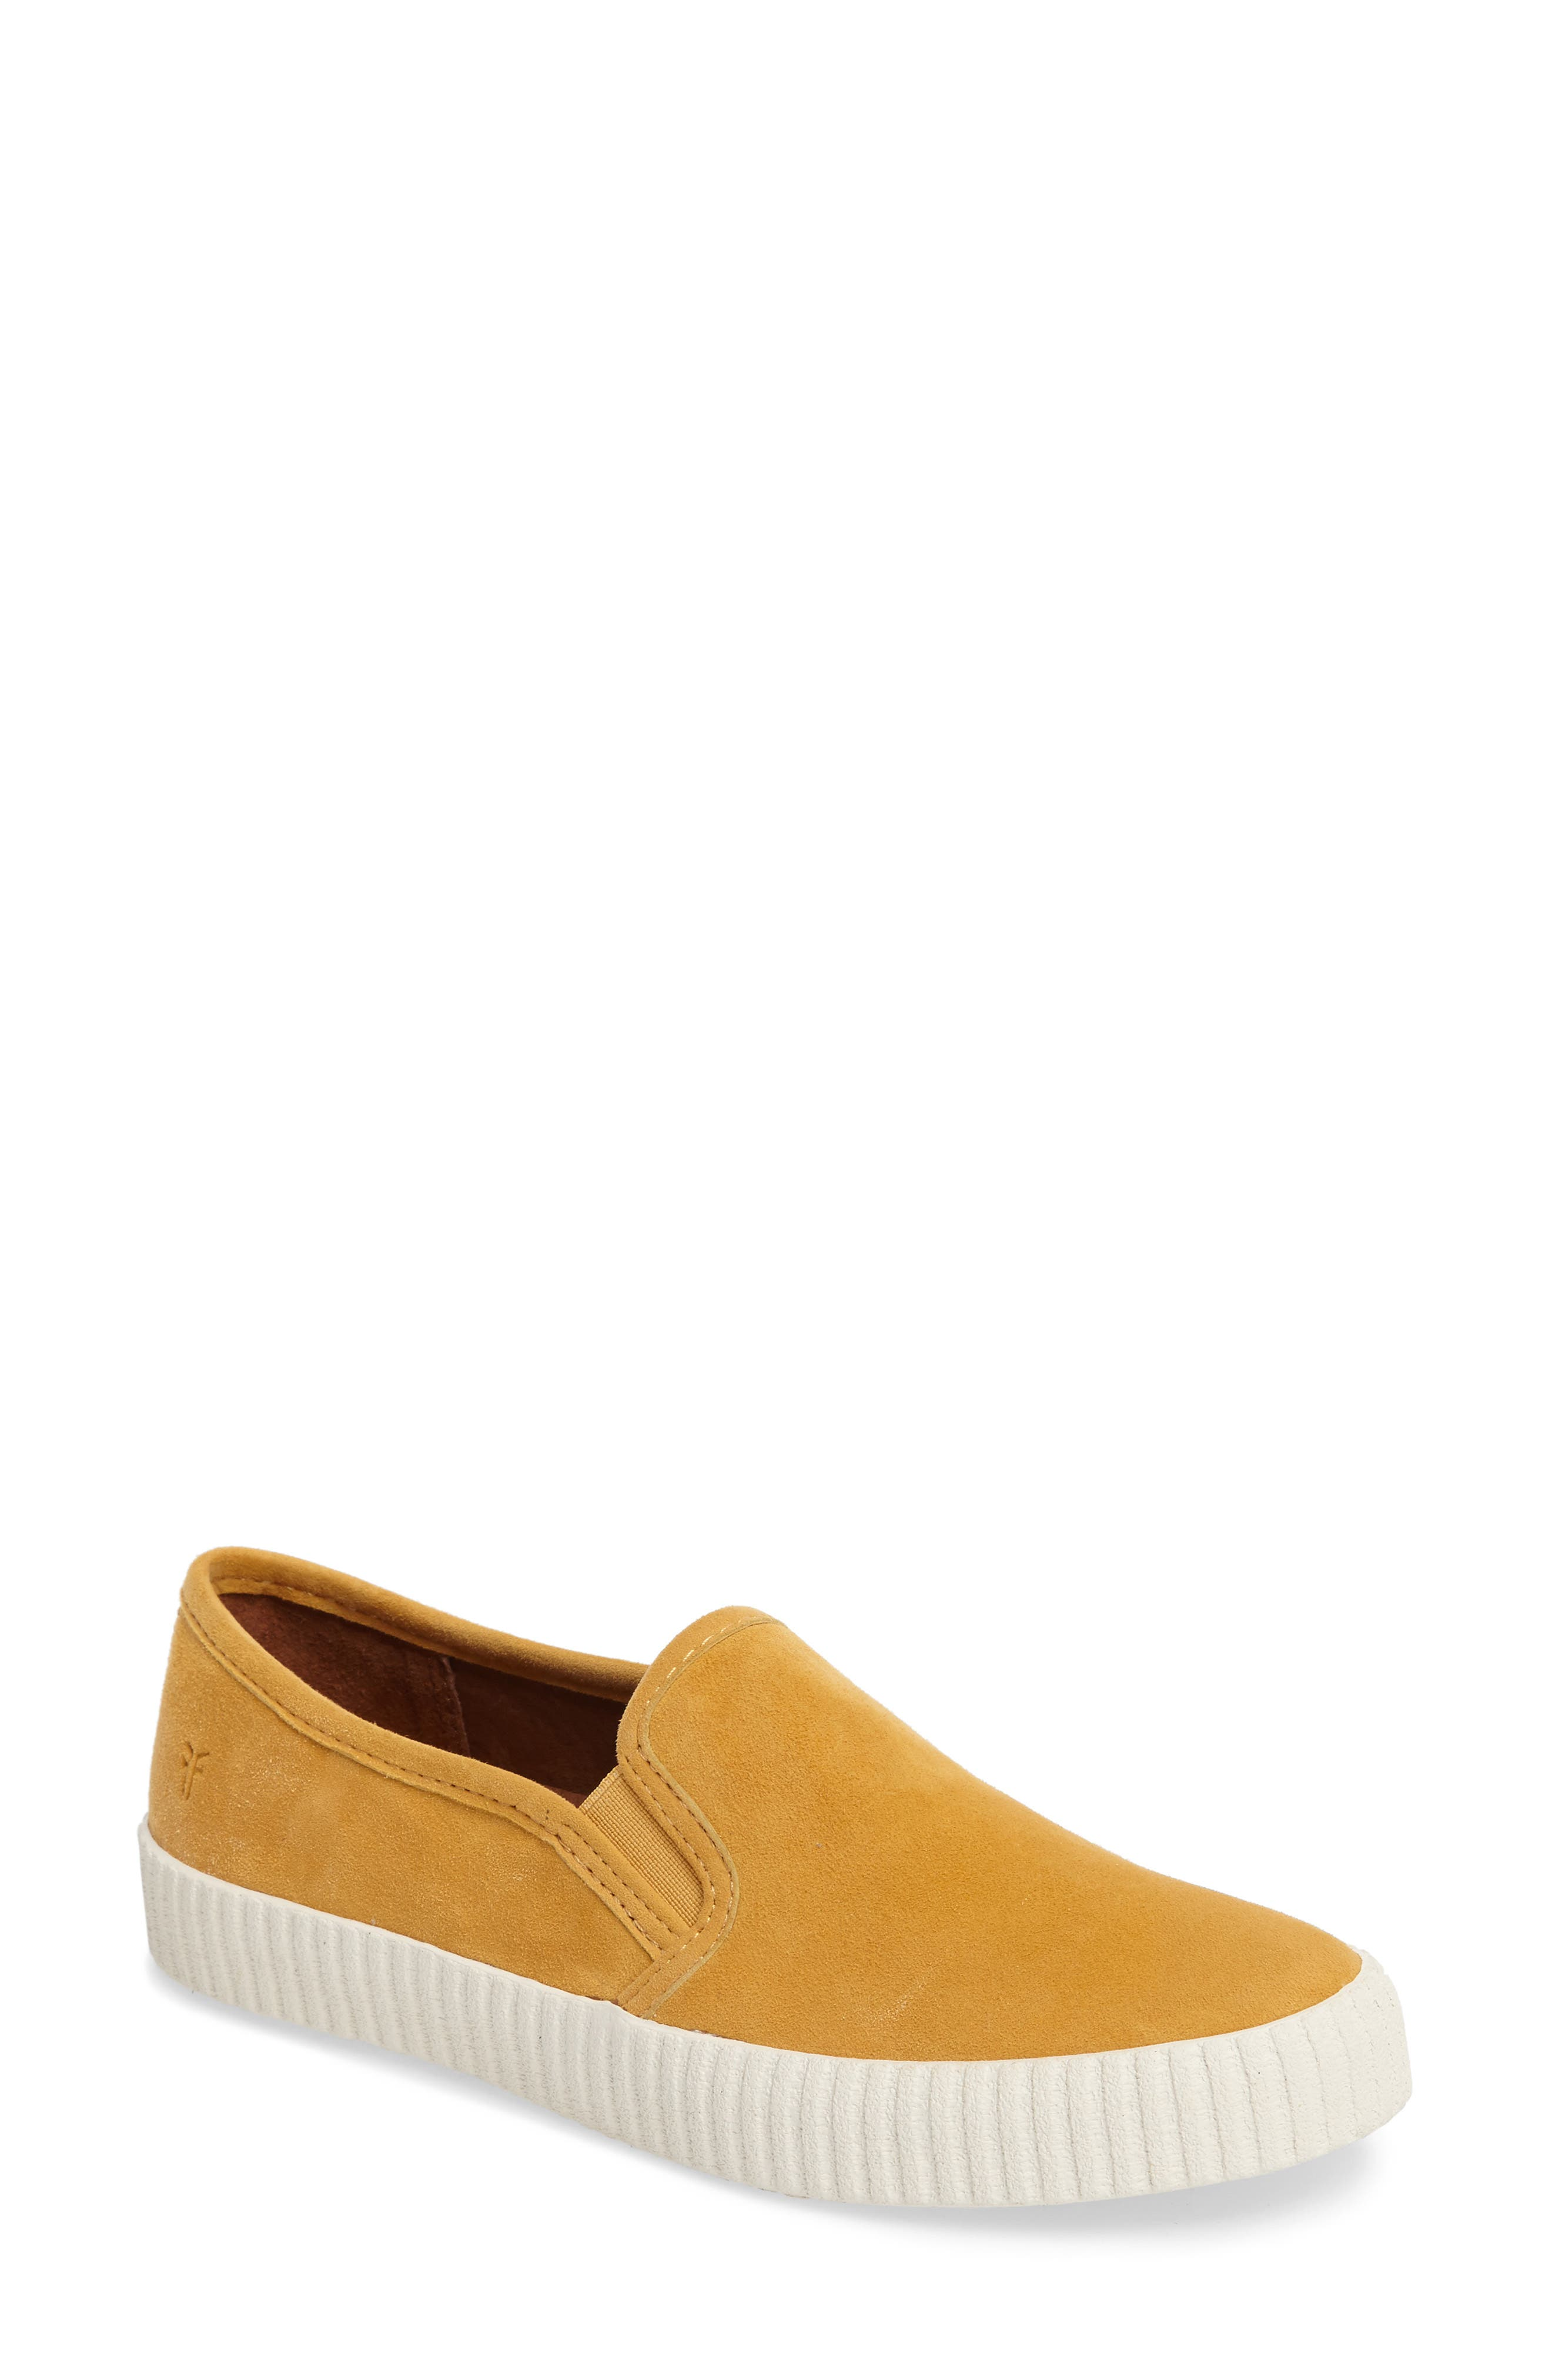 Camille Slip-On Sneaker,                         Main,                         color, Yellow